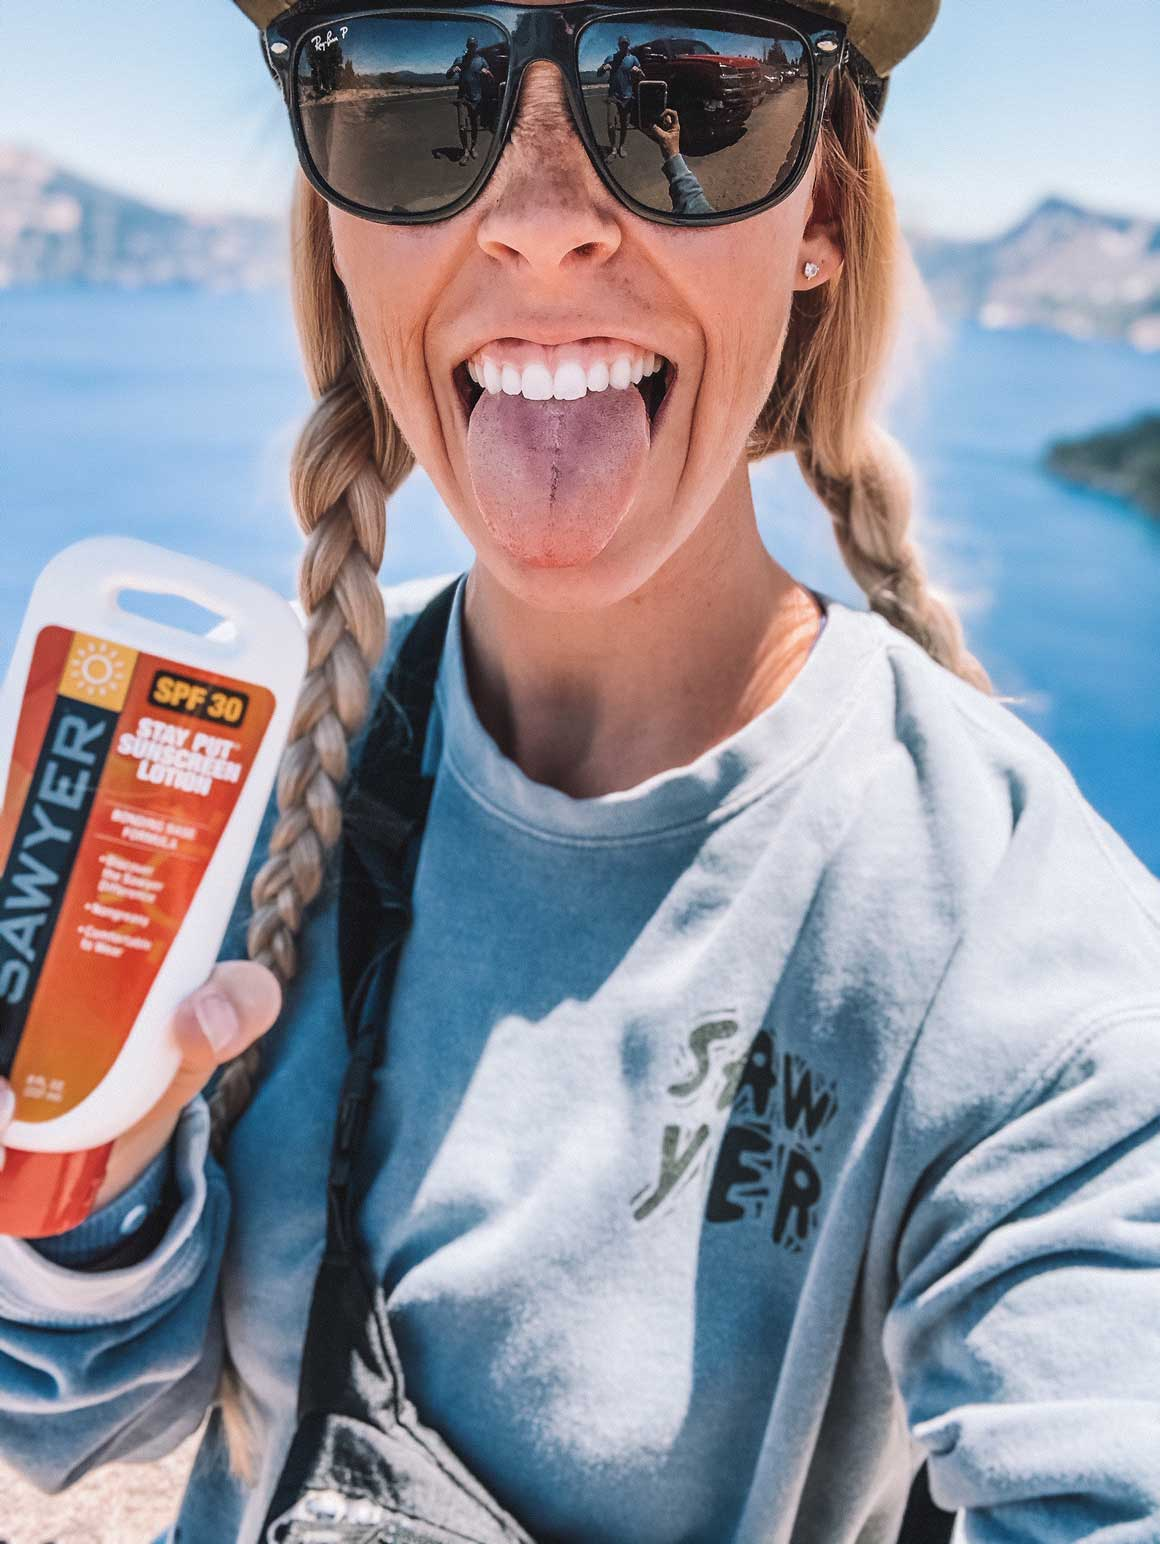 A Woman Excitedly Holding a Bottle of Sawyer Stay Put Sunscreen in Front of the Water